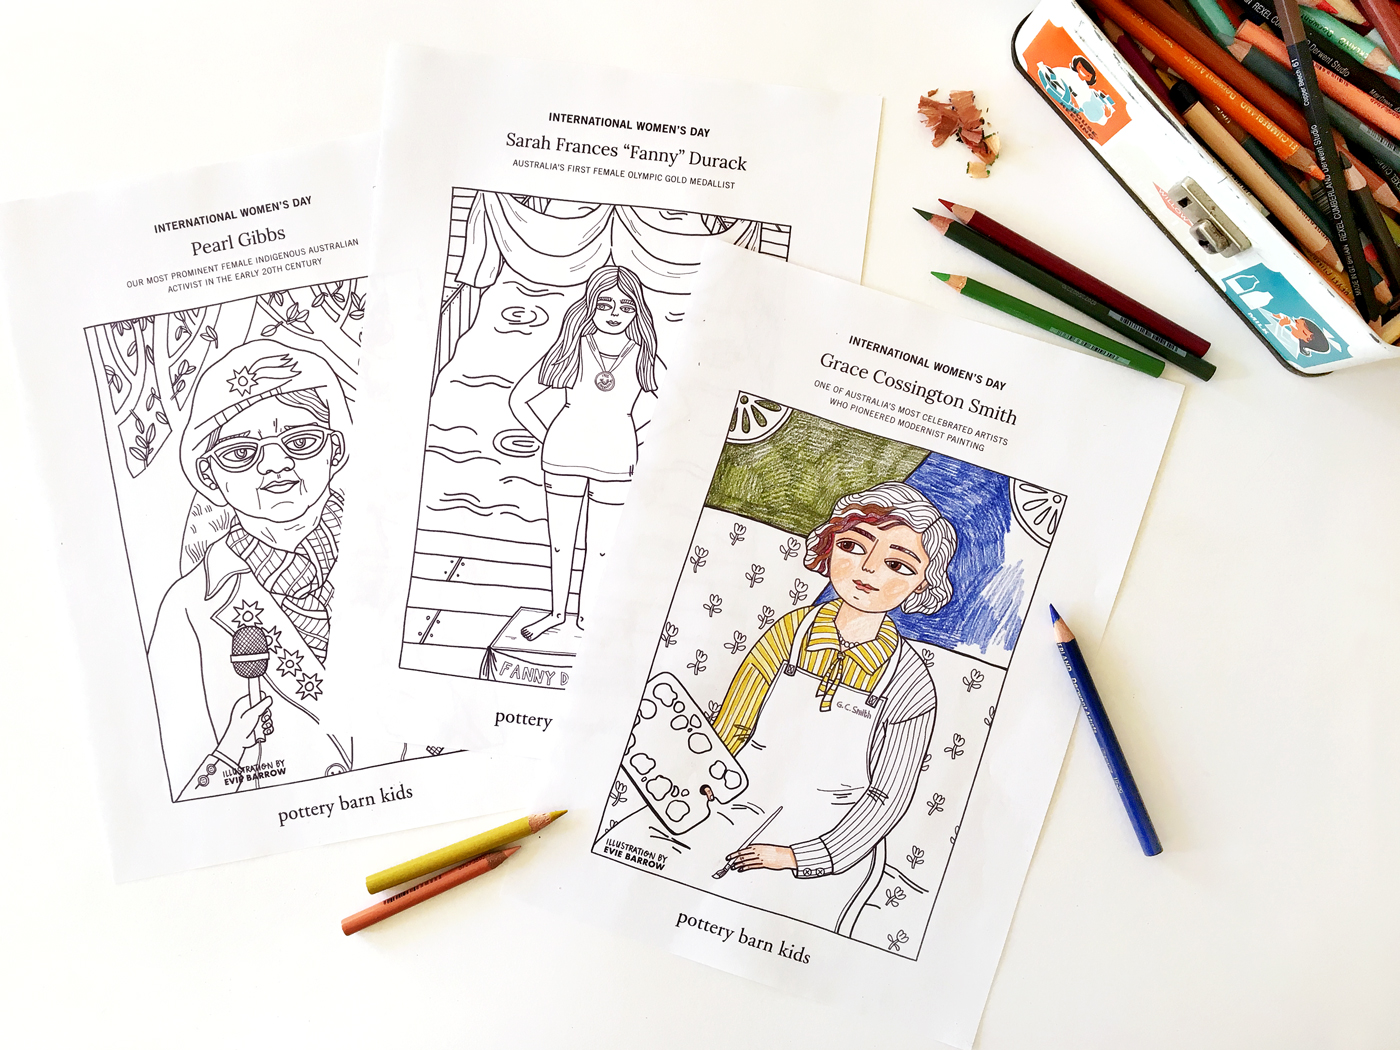 colouringpages_potterybarnaus_02.jpg